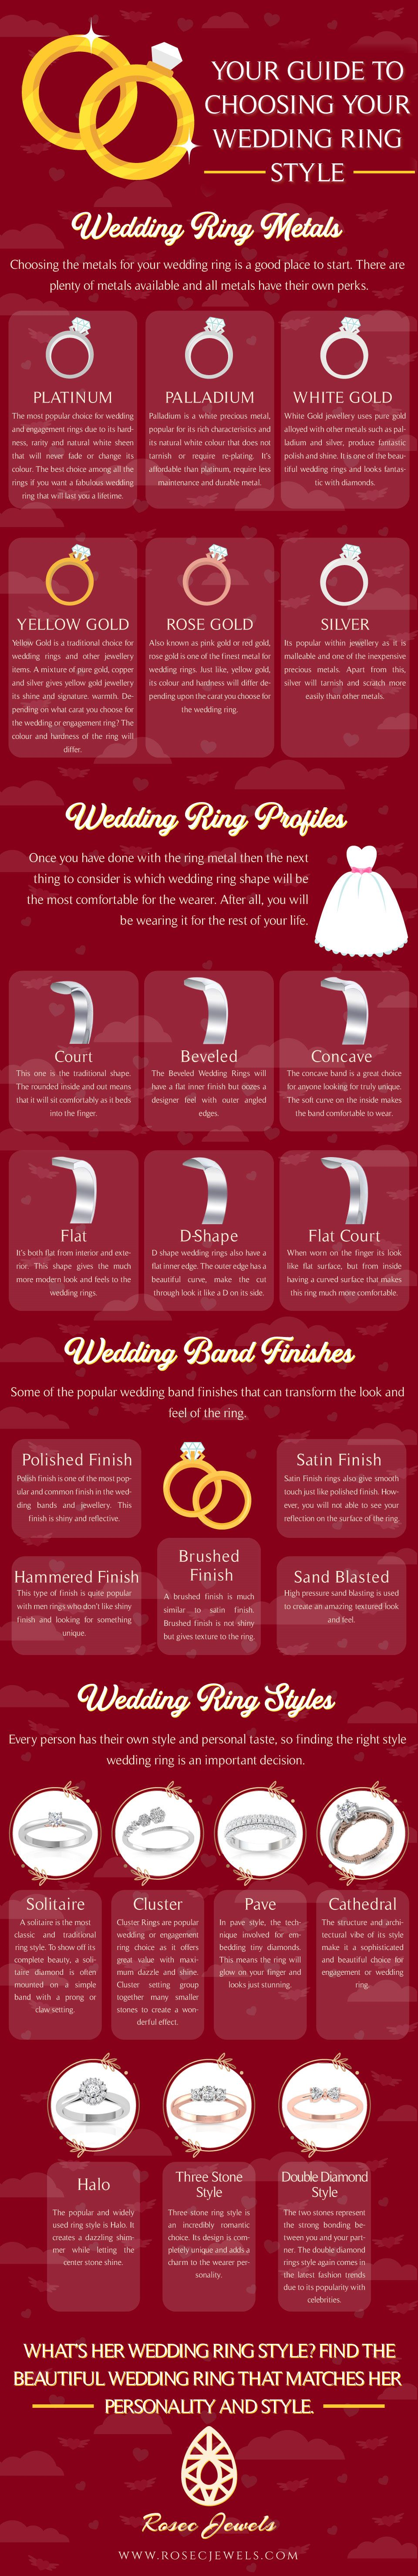 How To Choose A Wedding Ring? - Infographic